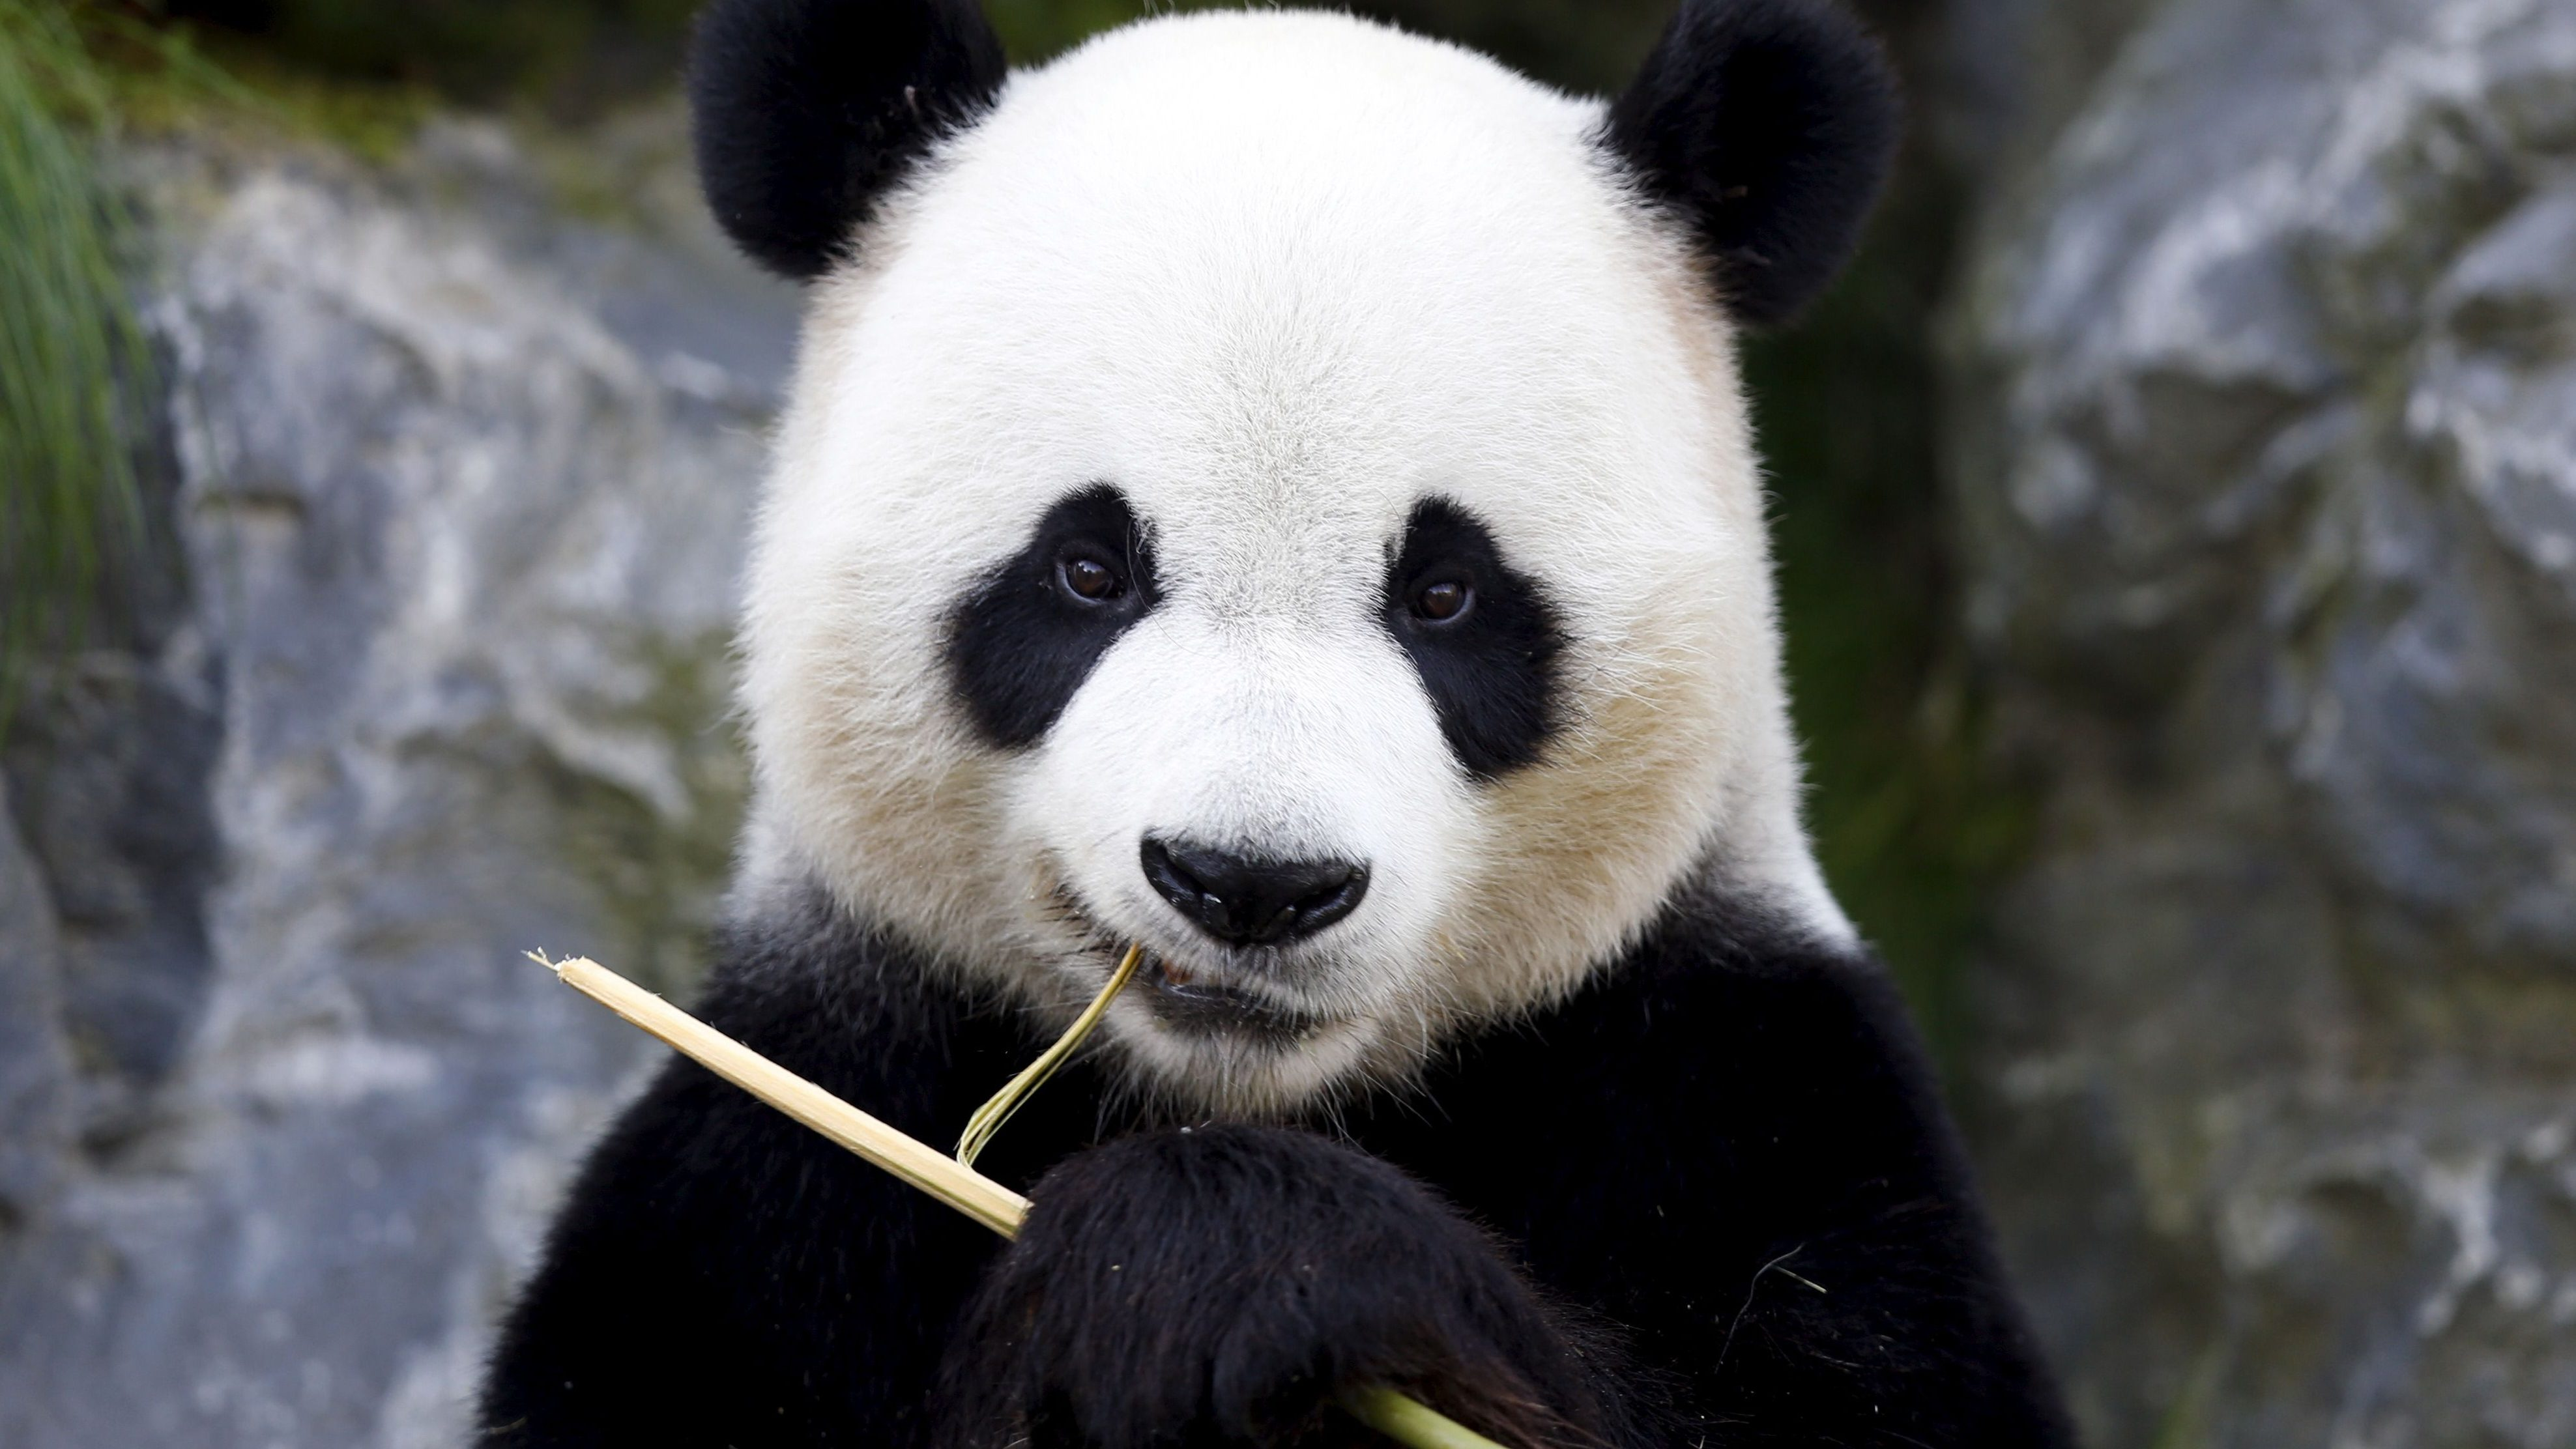 Xing Hui, a 6-year-old giant panda born in China, eats bamboo at the Pairi Daiza wildlife park in Brugelette, Belgium September 28, 2015.